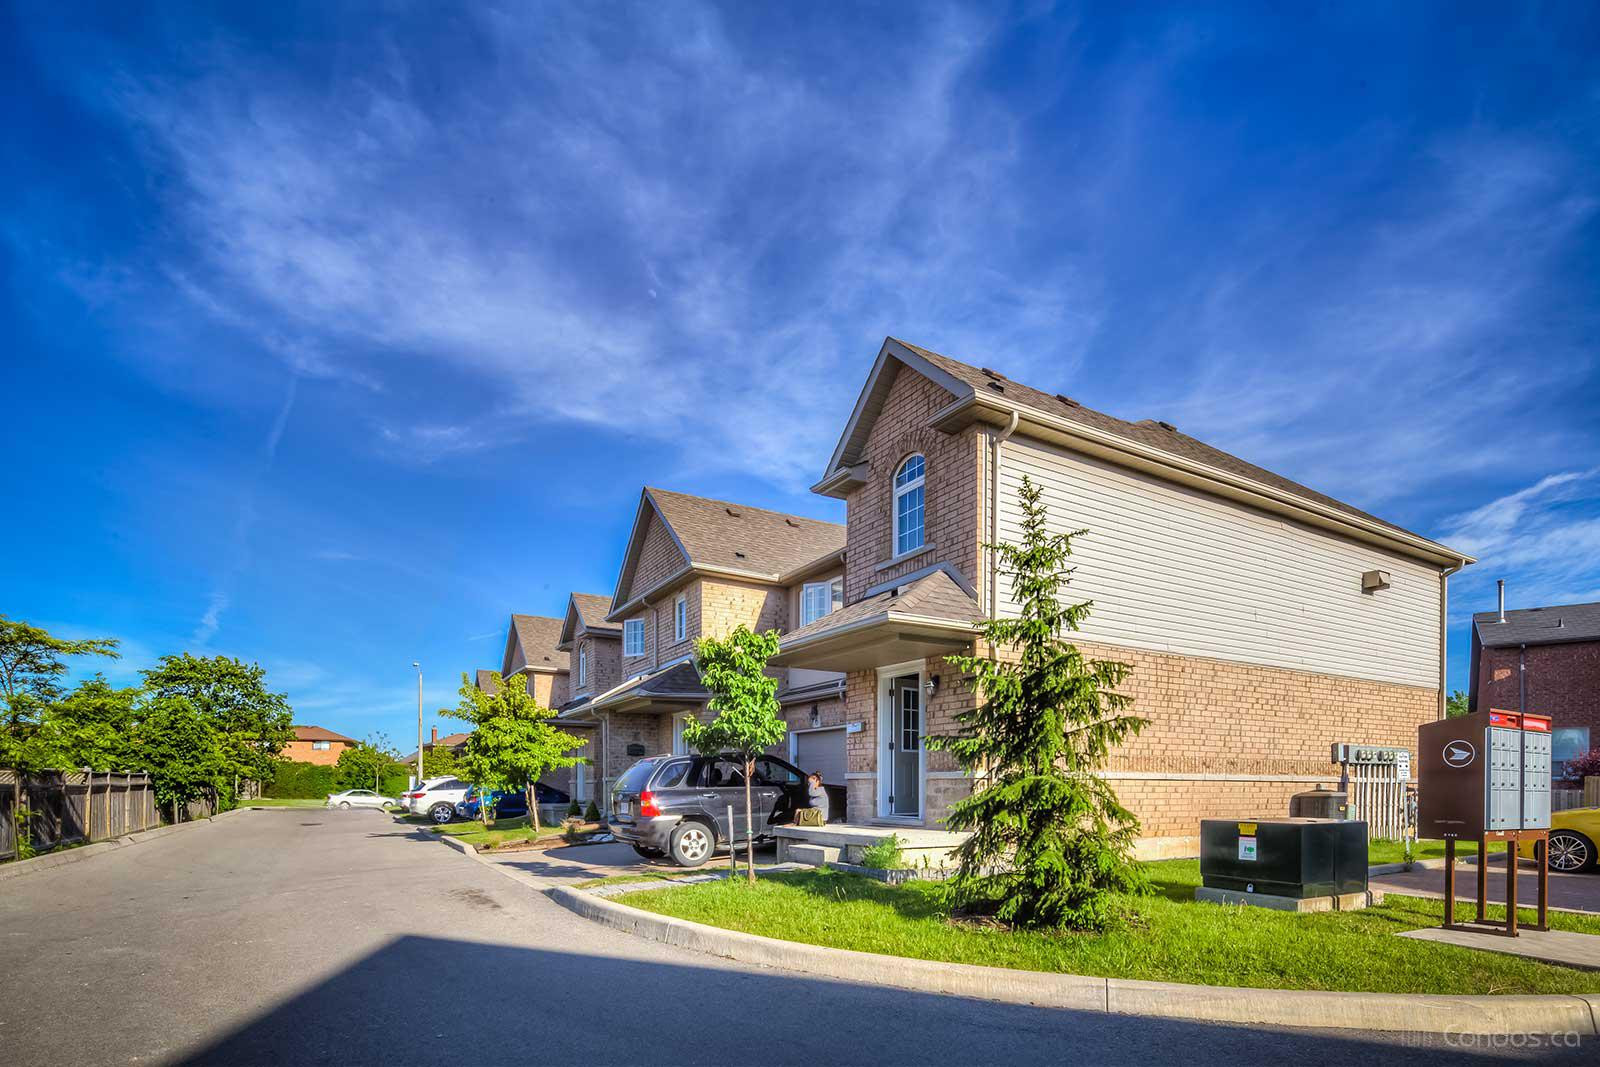 1540 Upper Gage Condos at 1540 Upper Gage Ave, Hamilton City 0